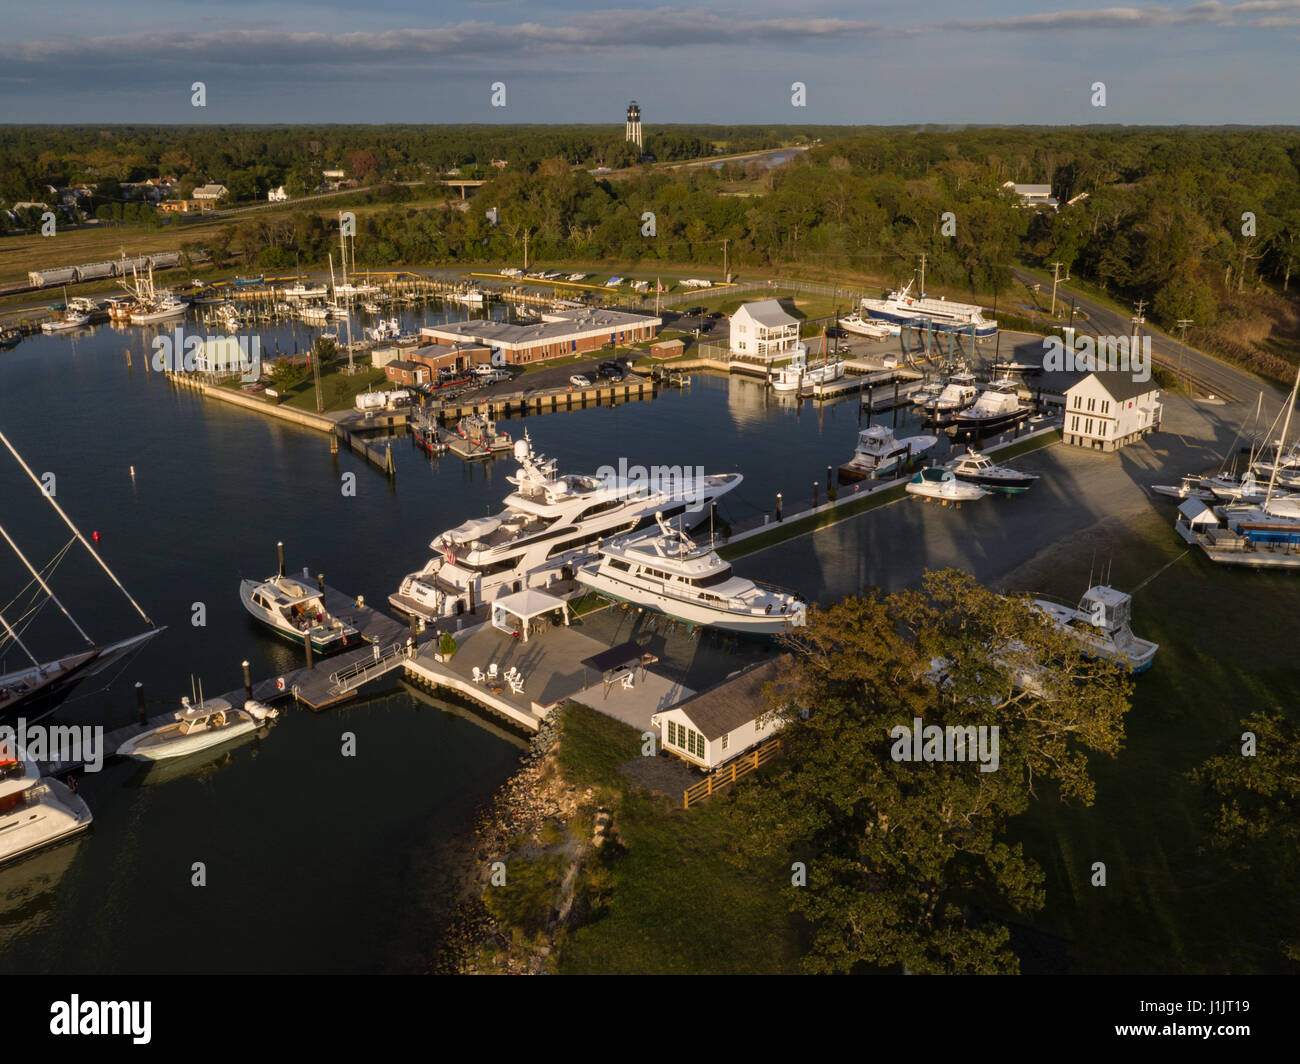 Yacht Club aerial - Stock Image